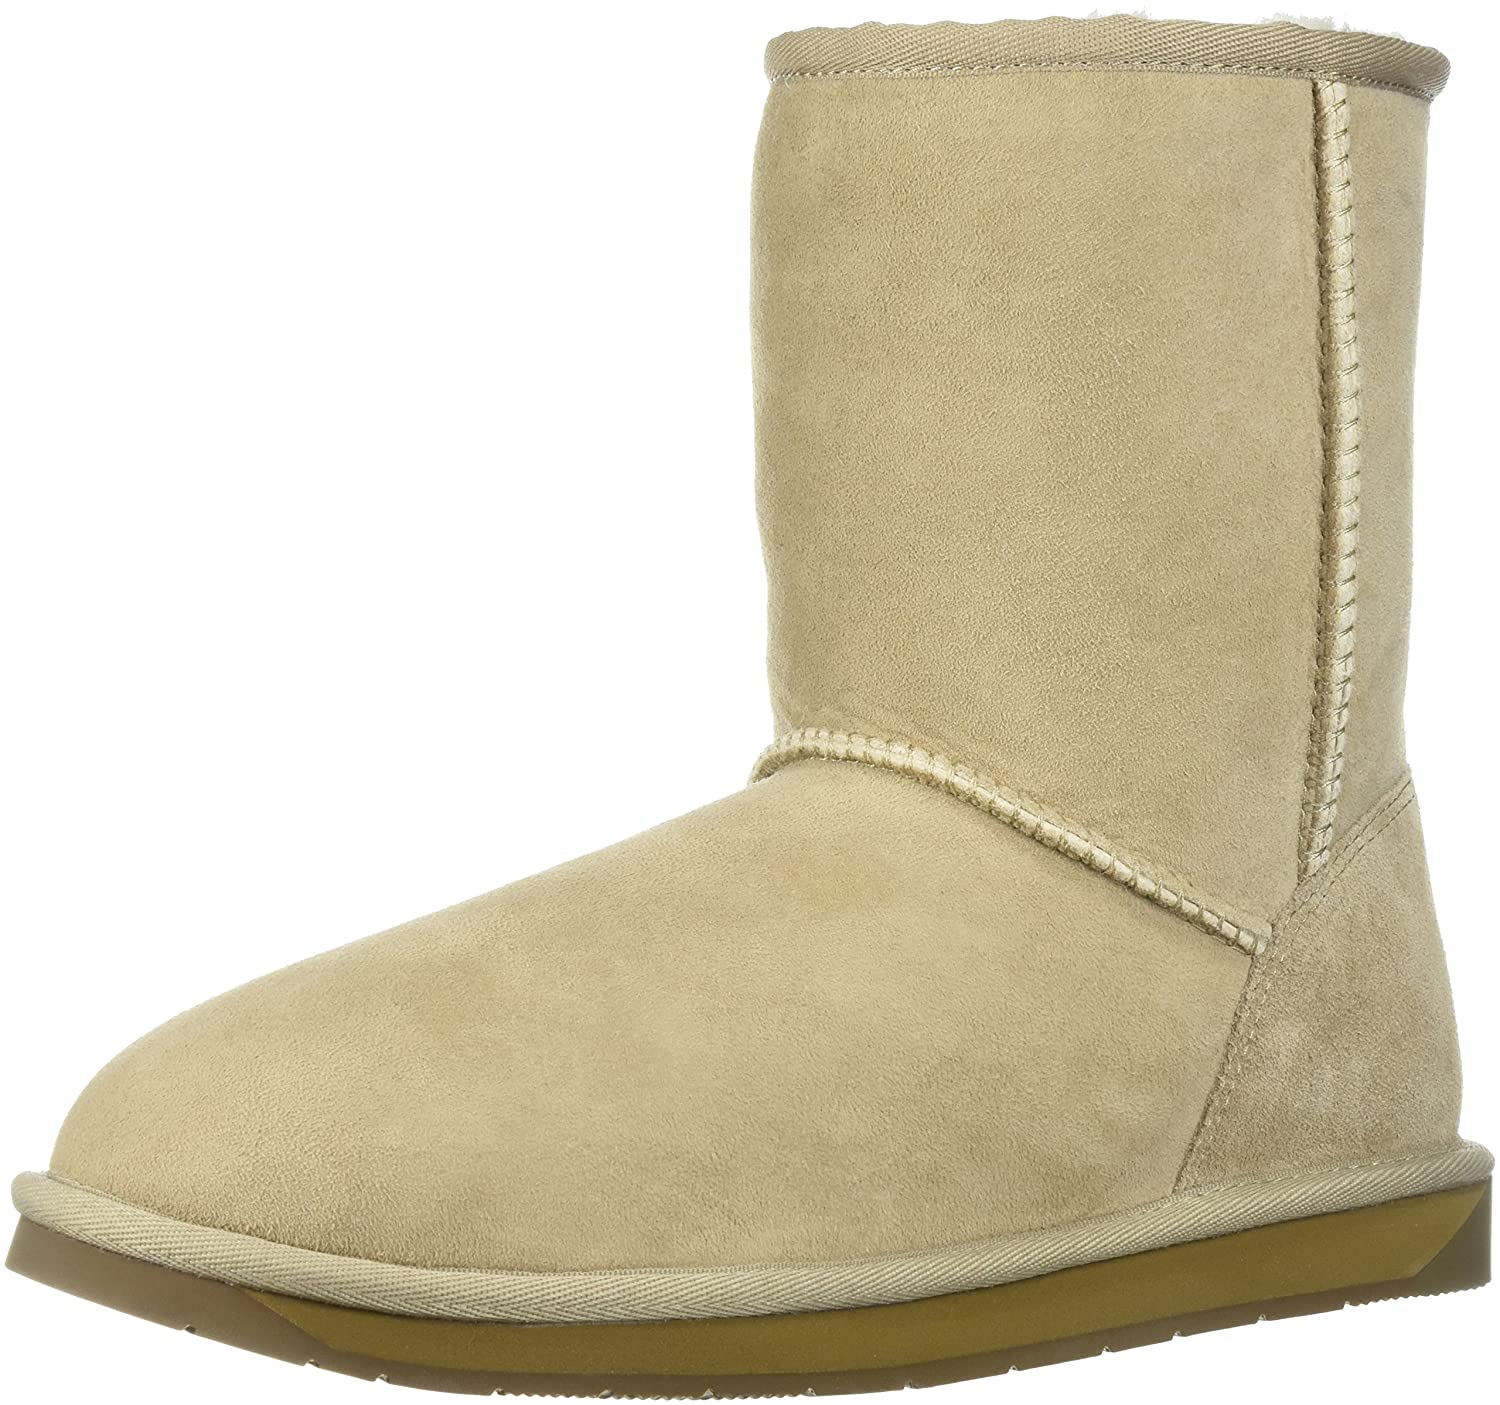 206 Collective Women's Balcom Short Back-Zip Shearling Ankle Boot B0746MC541 11 B(M) US|Sand Suede